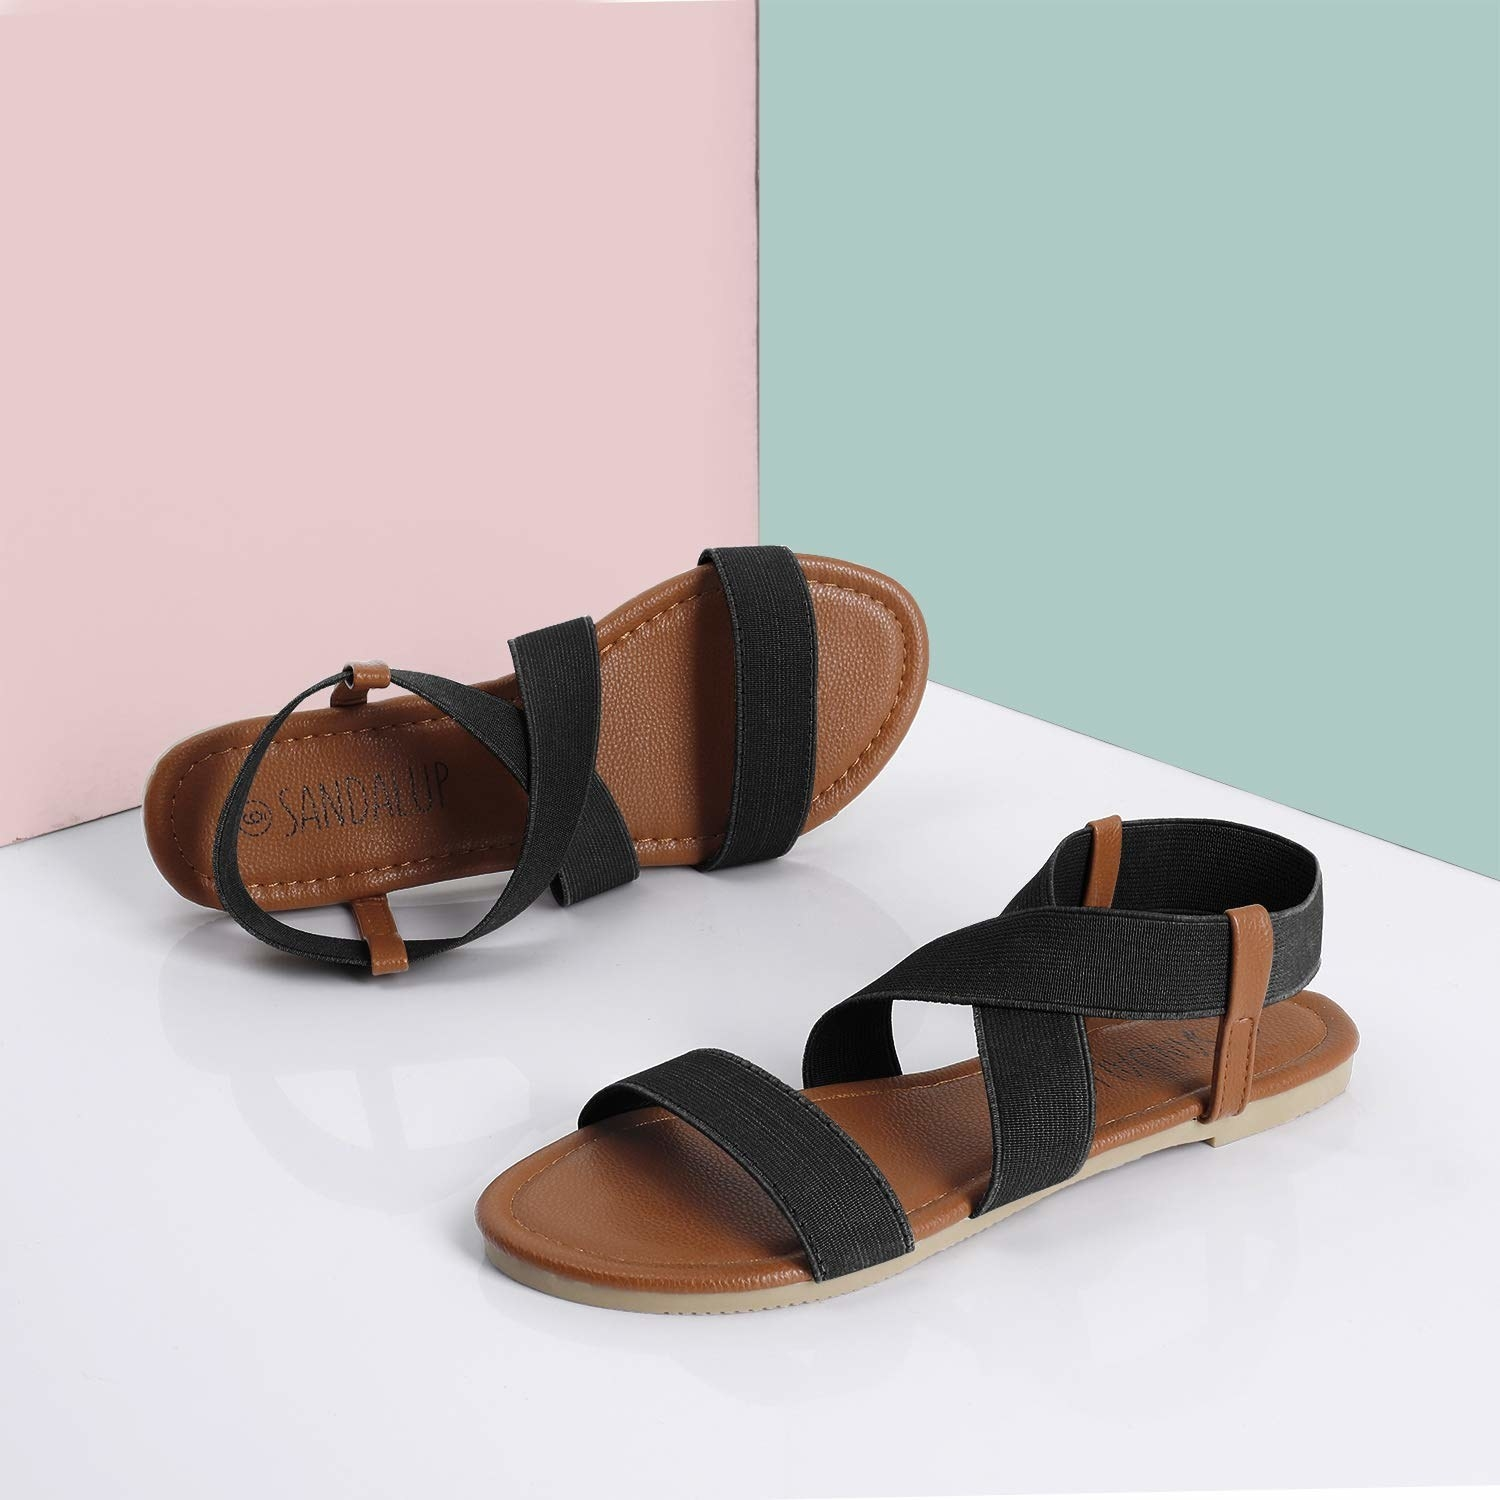 A product shot of the flat sandals showing their faux leather bottom and straps that attach to a curved fabric strap that goes over the top of the foot. There is a two strap in the front with the same fabric.